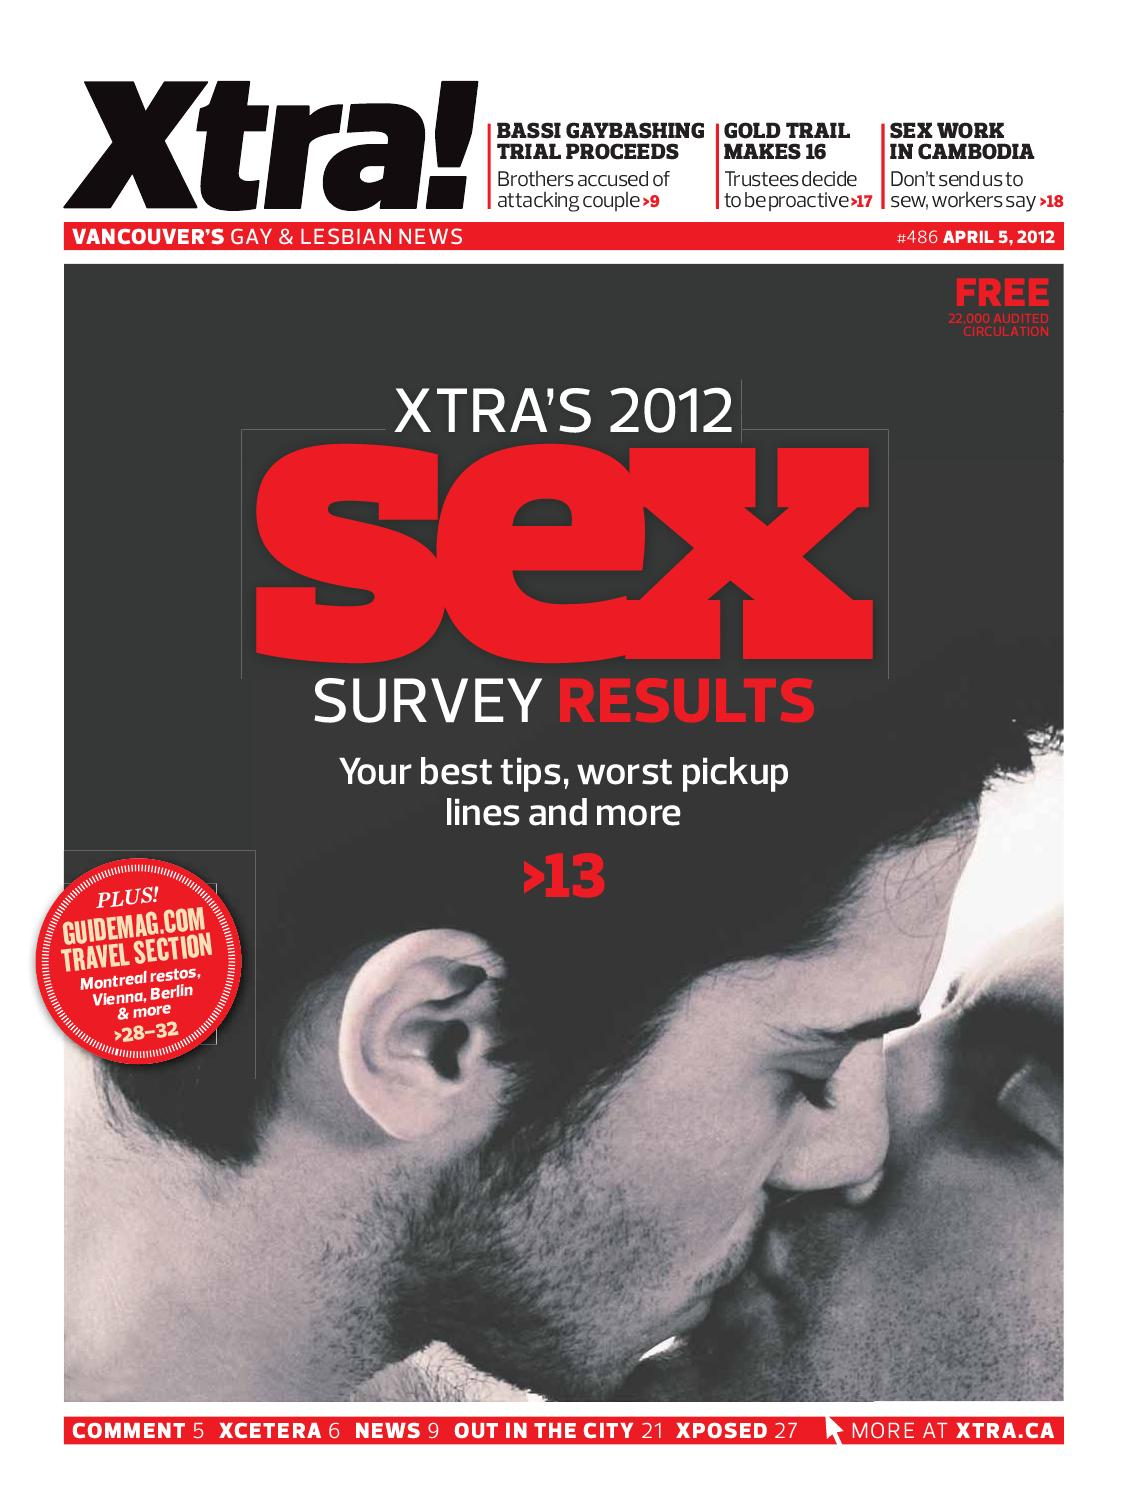 xtra - vancouver's gay and lesbian news issue 486pink triangle